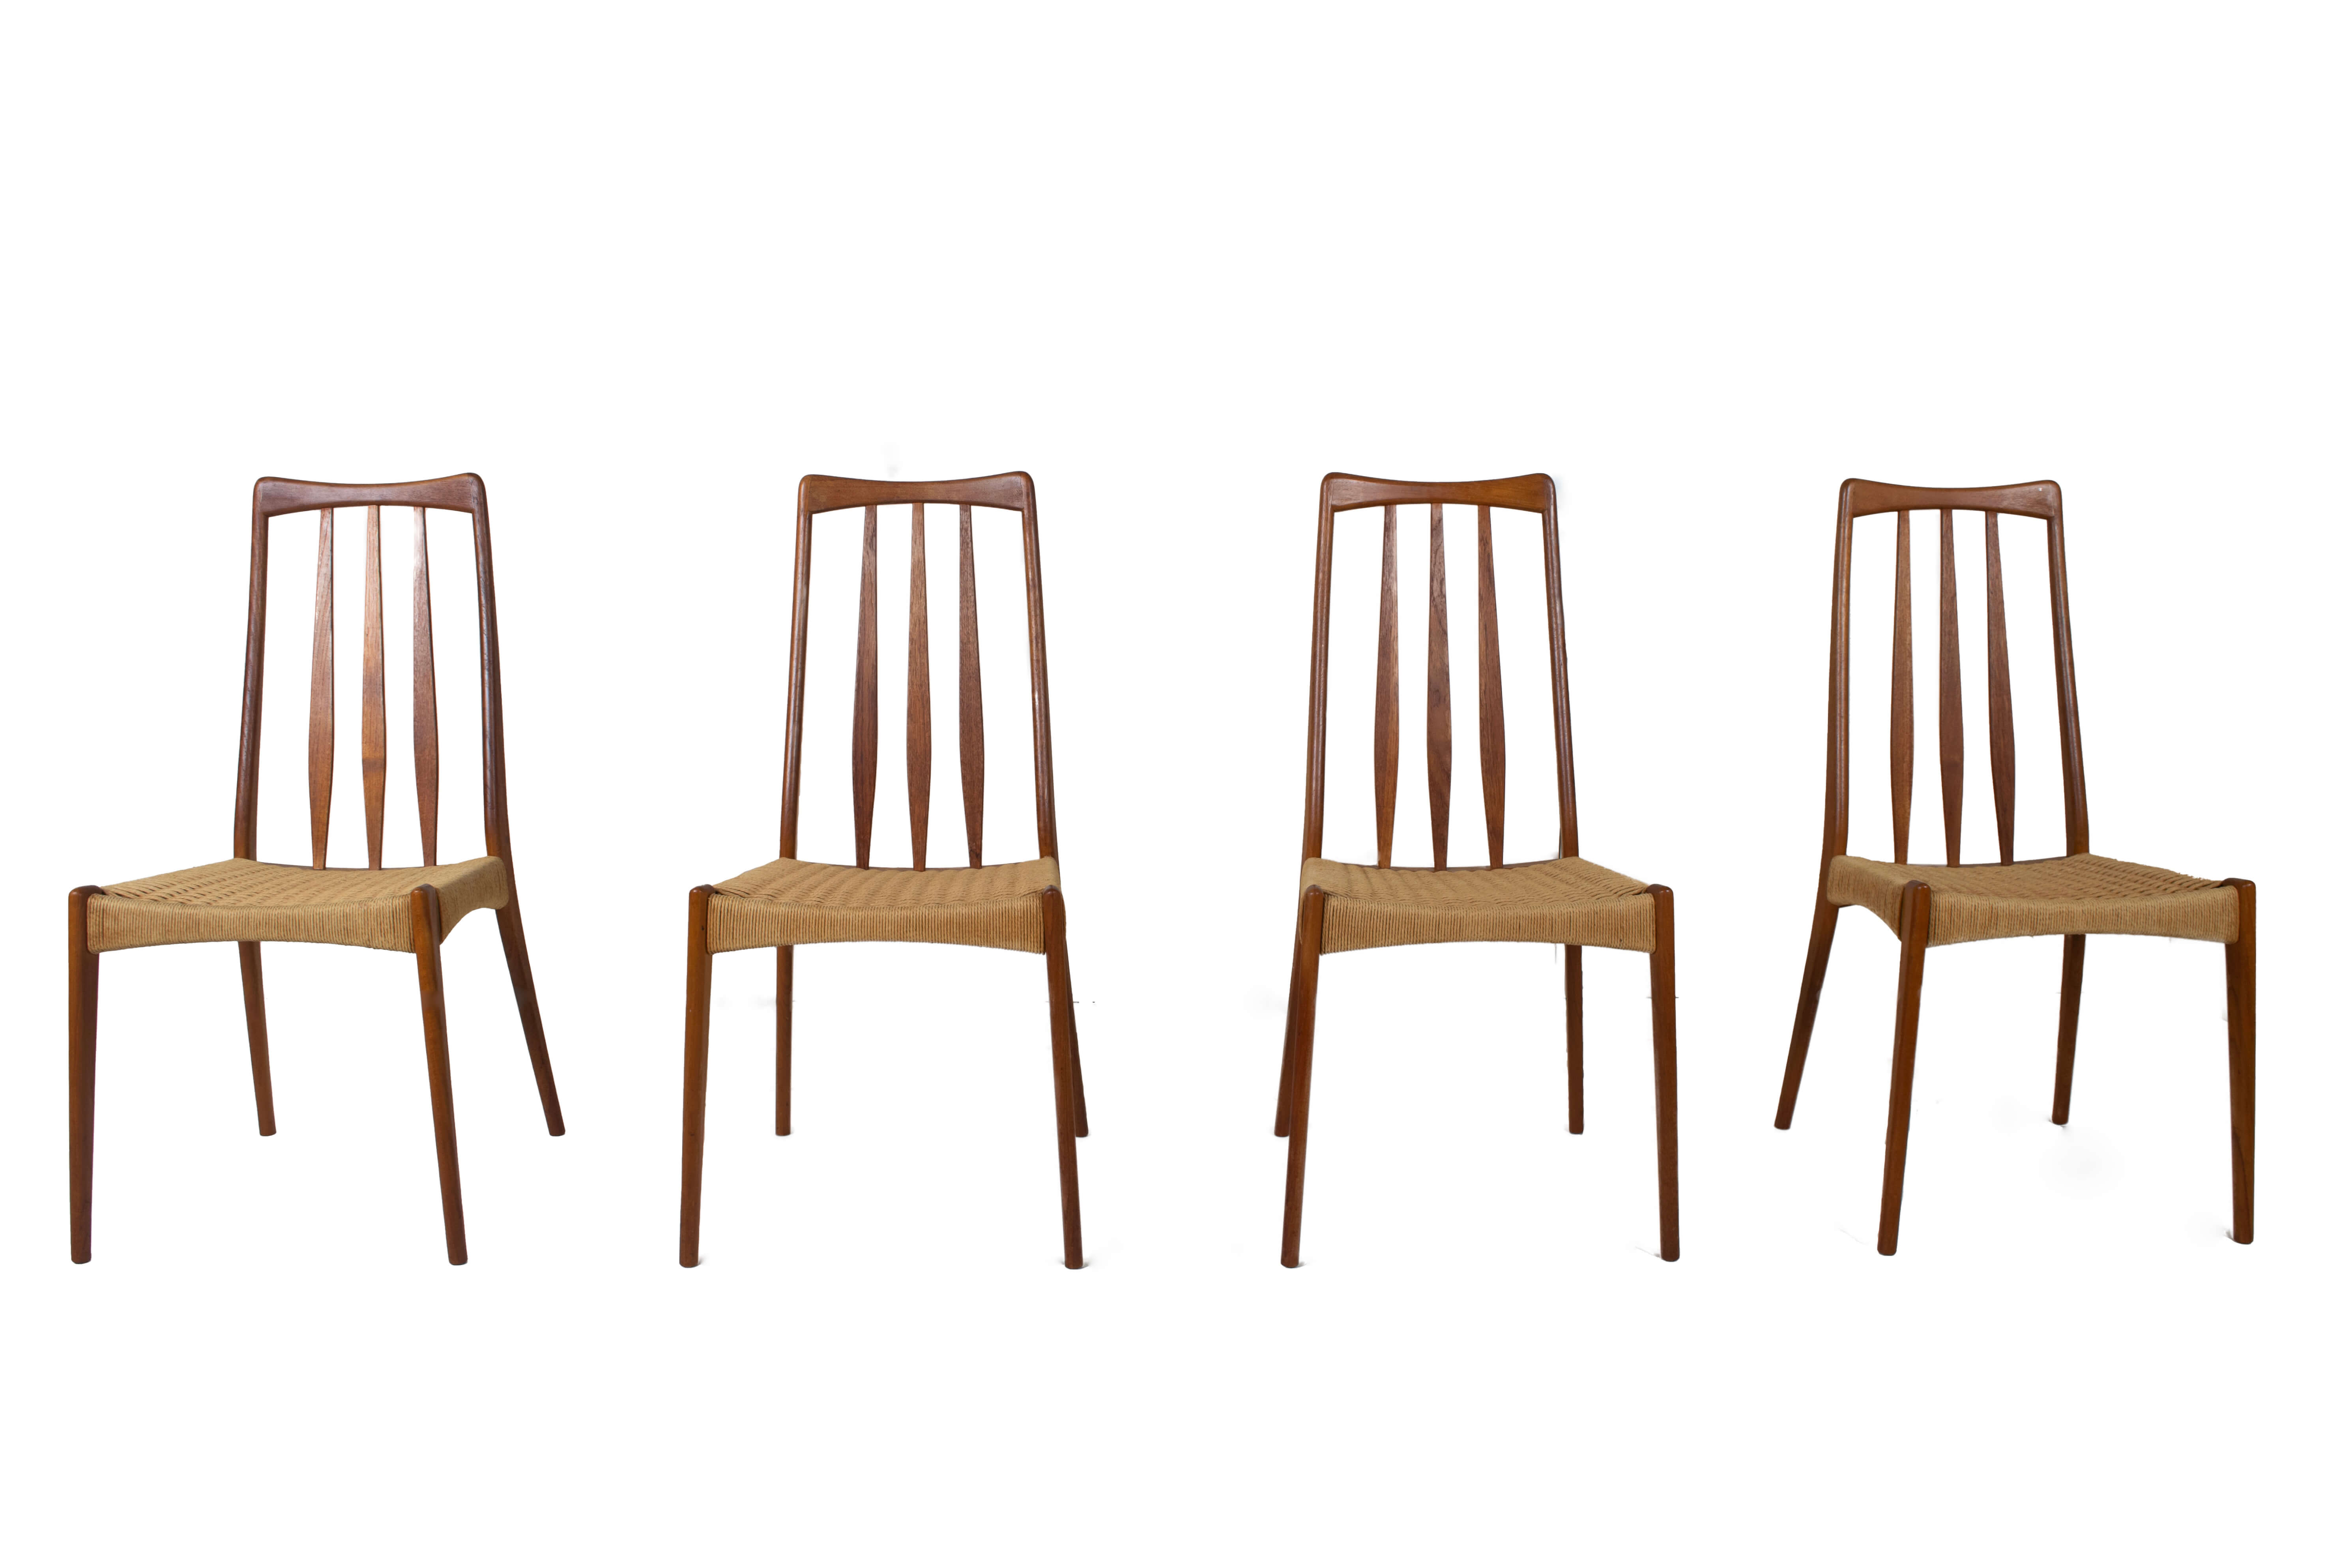 Scandinavian Design Vintage Dining Chairs in Papercord and Teak